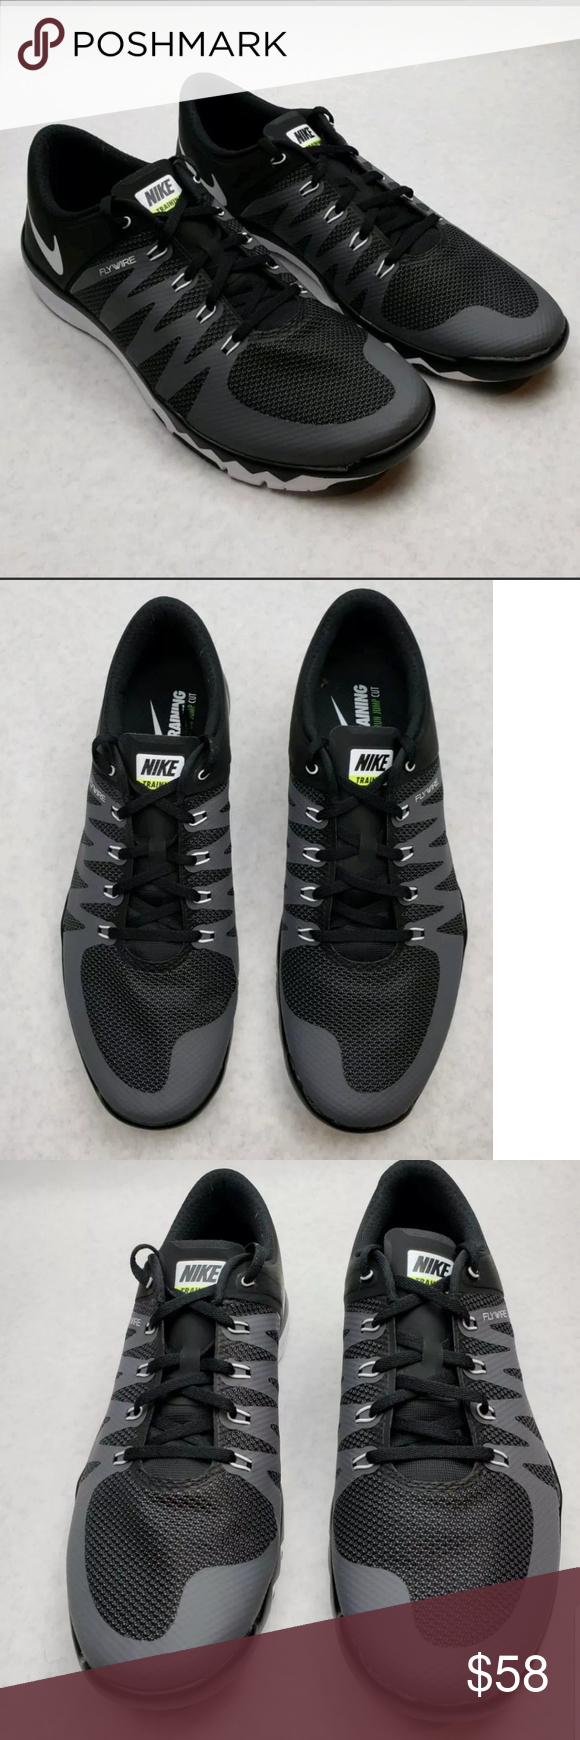 8a8815fbe5543 Nike Free Trainer 5.0 V6 Men s Size 15 Brand New without box Nike Free  Trainer 5.0